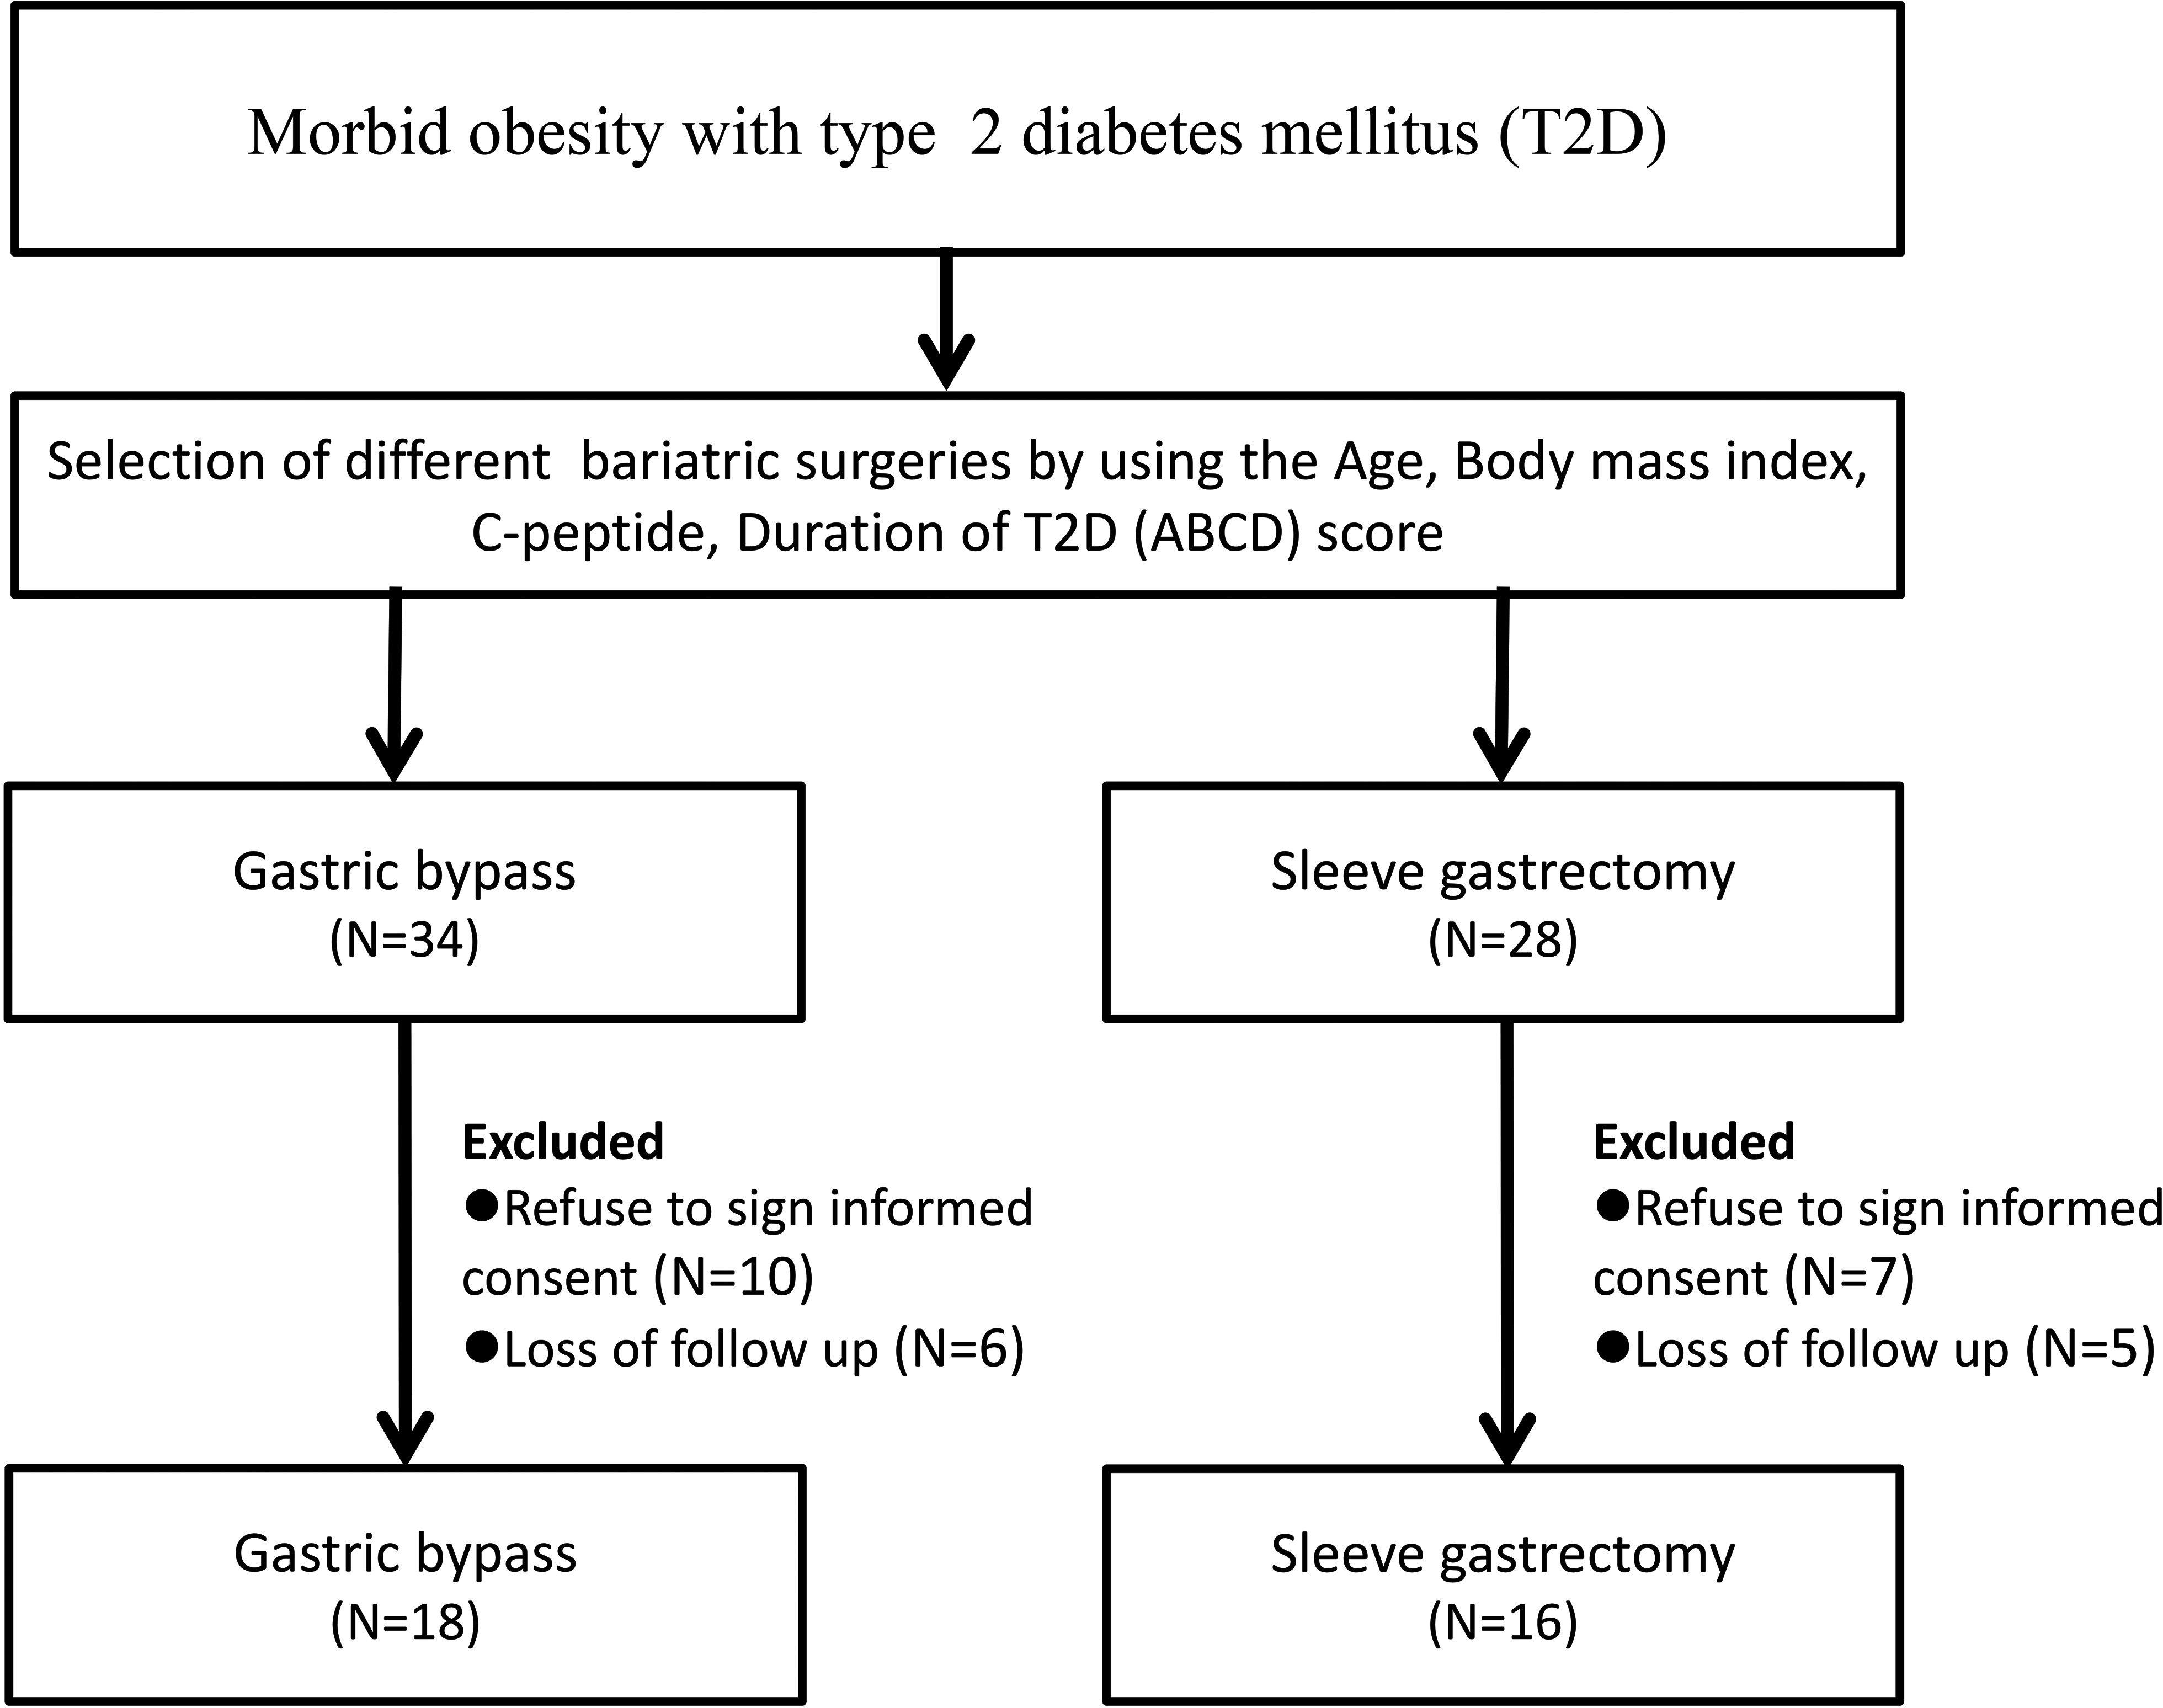 Does Bariatric Surgery Influence Plasma Levels Of Fetuin A And